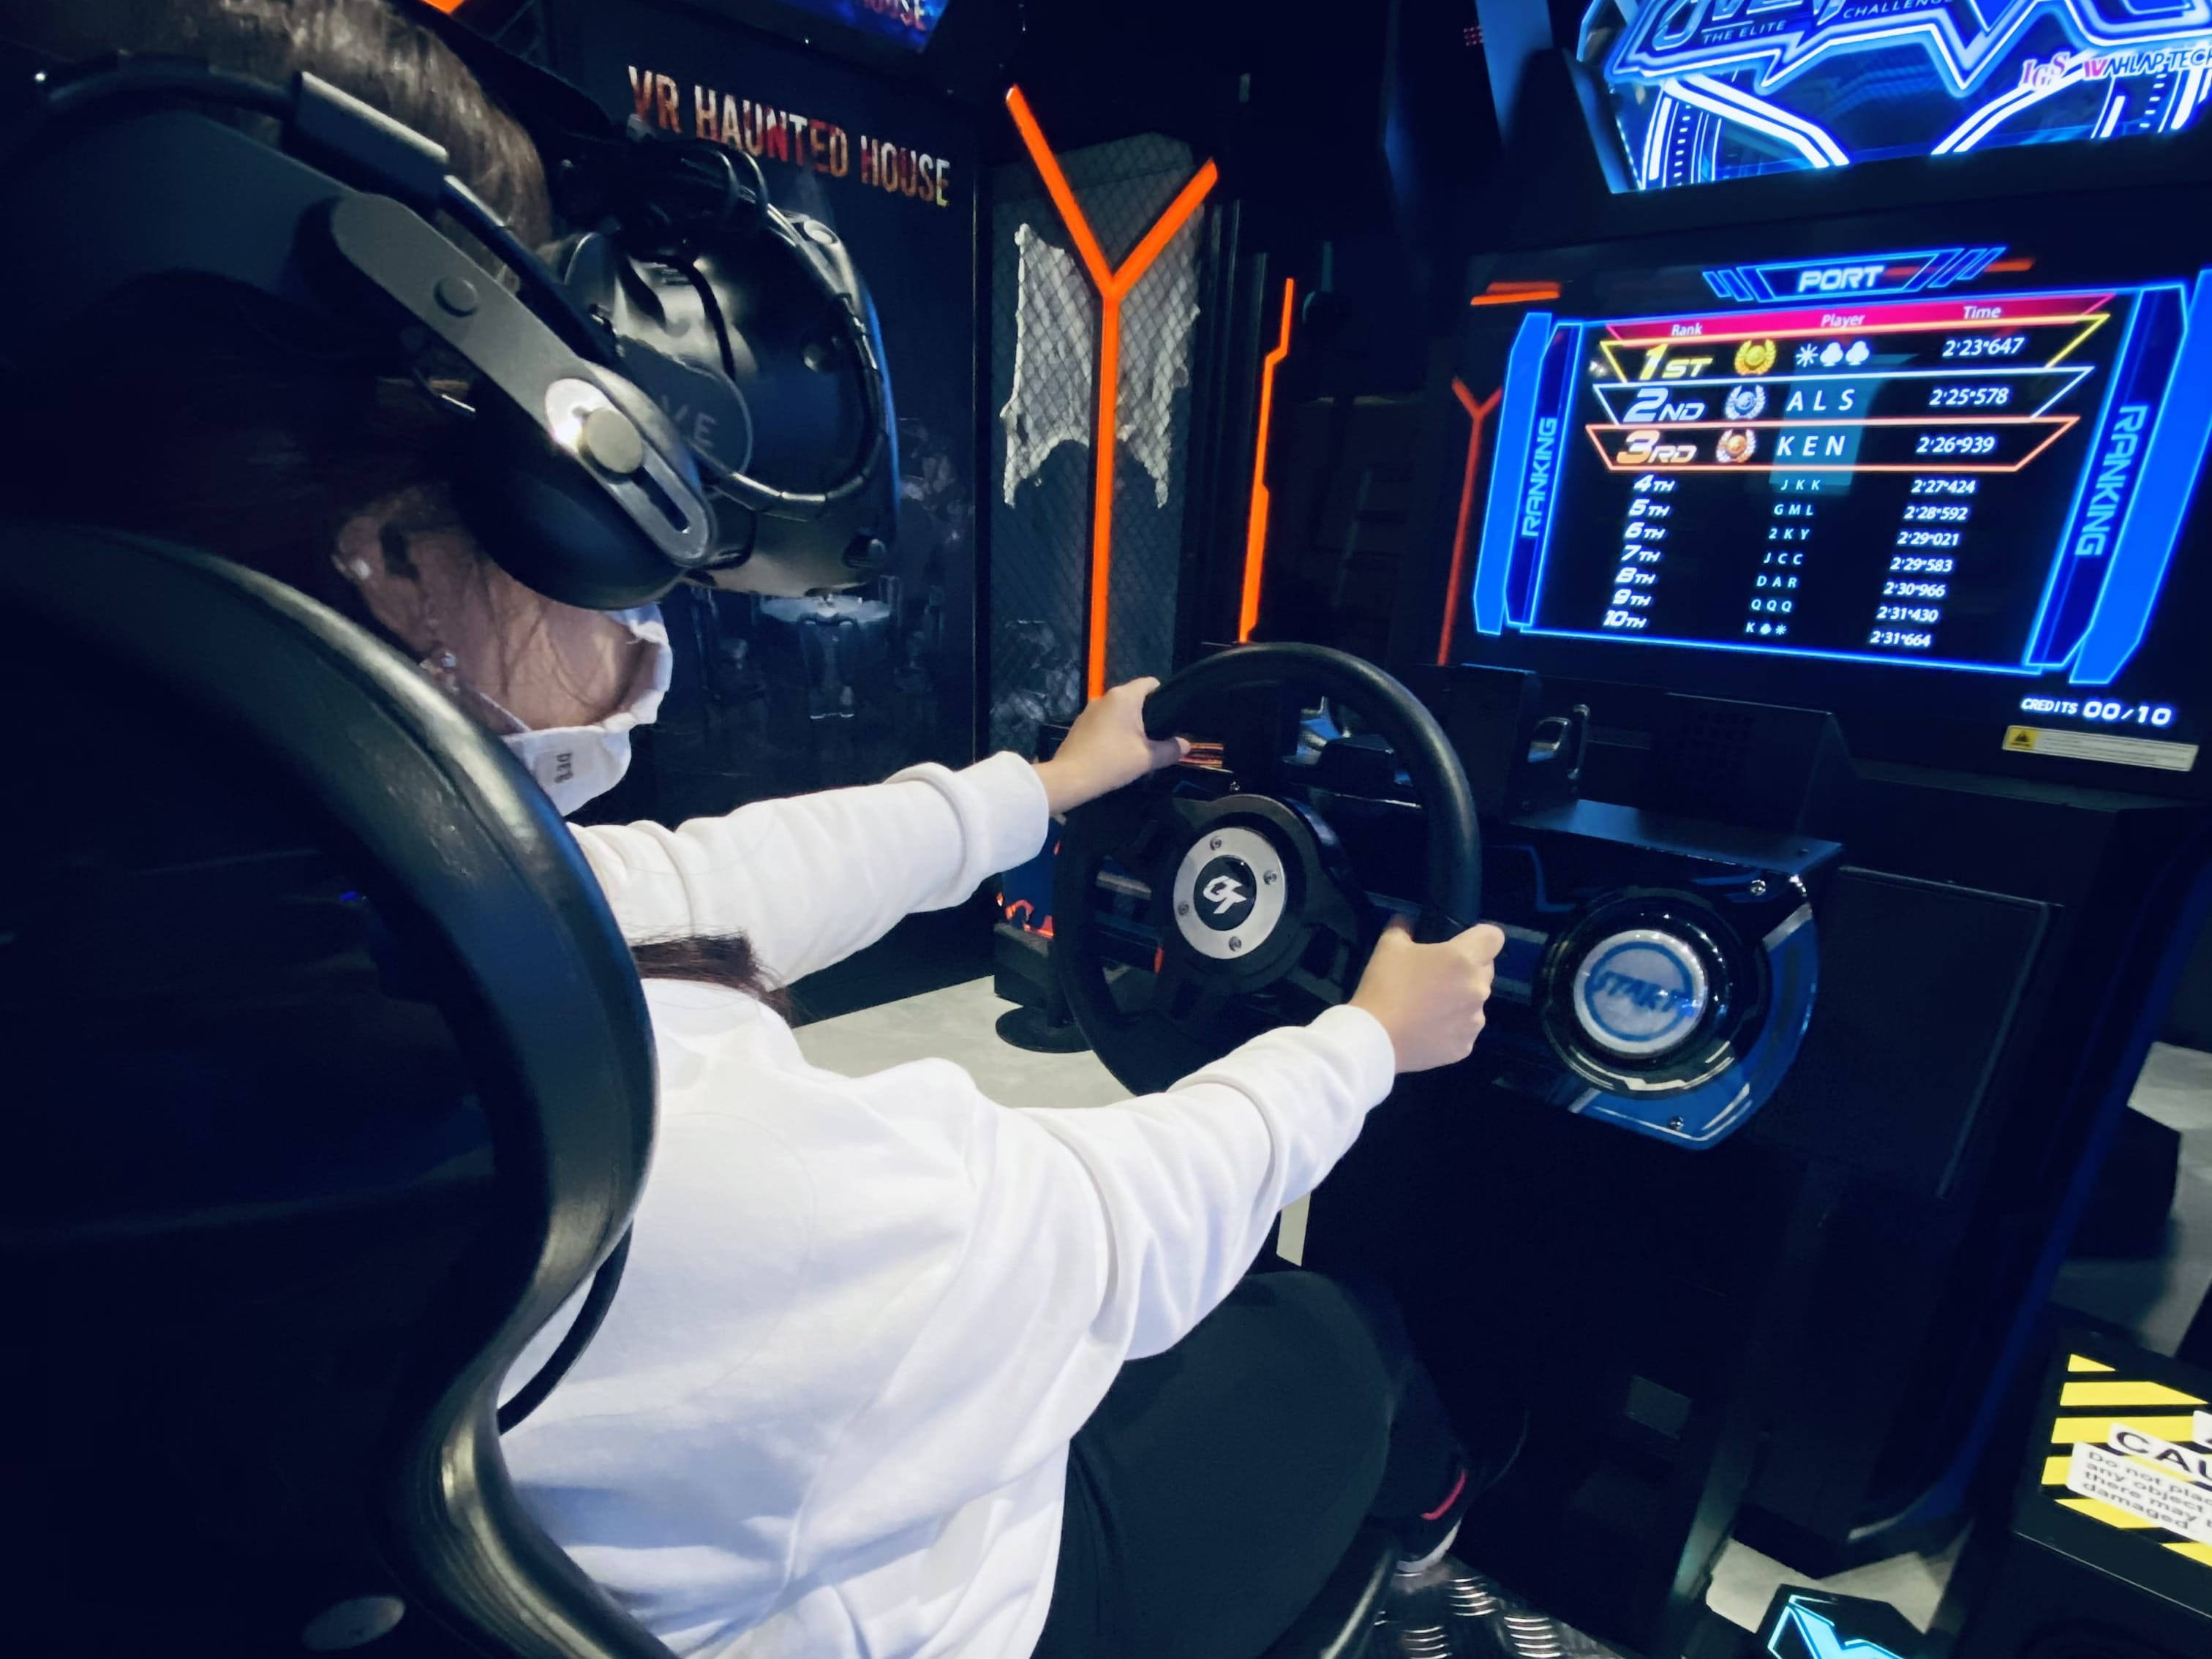 45 Min of VR Game for 2 pax (Weekday)